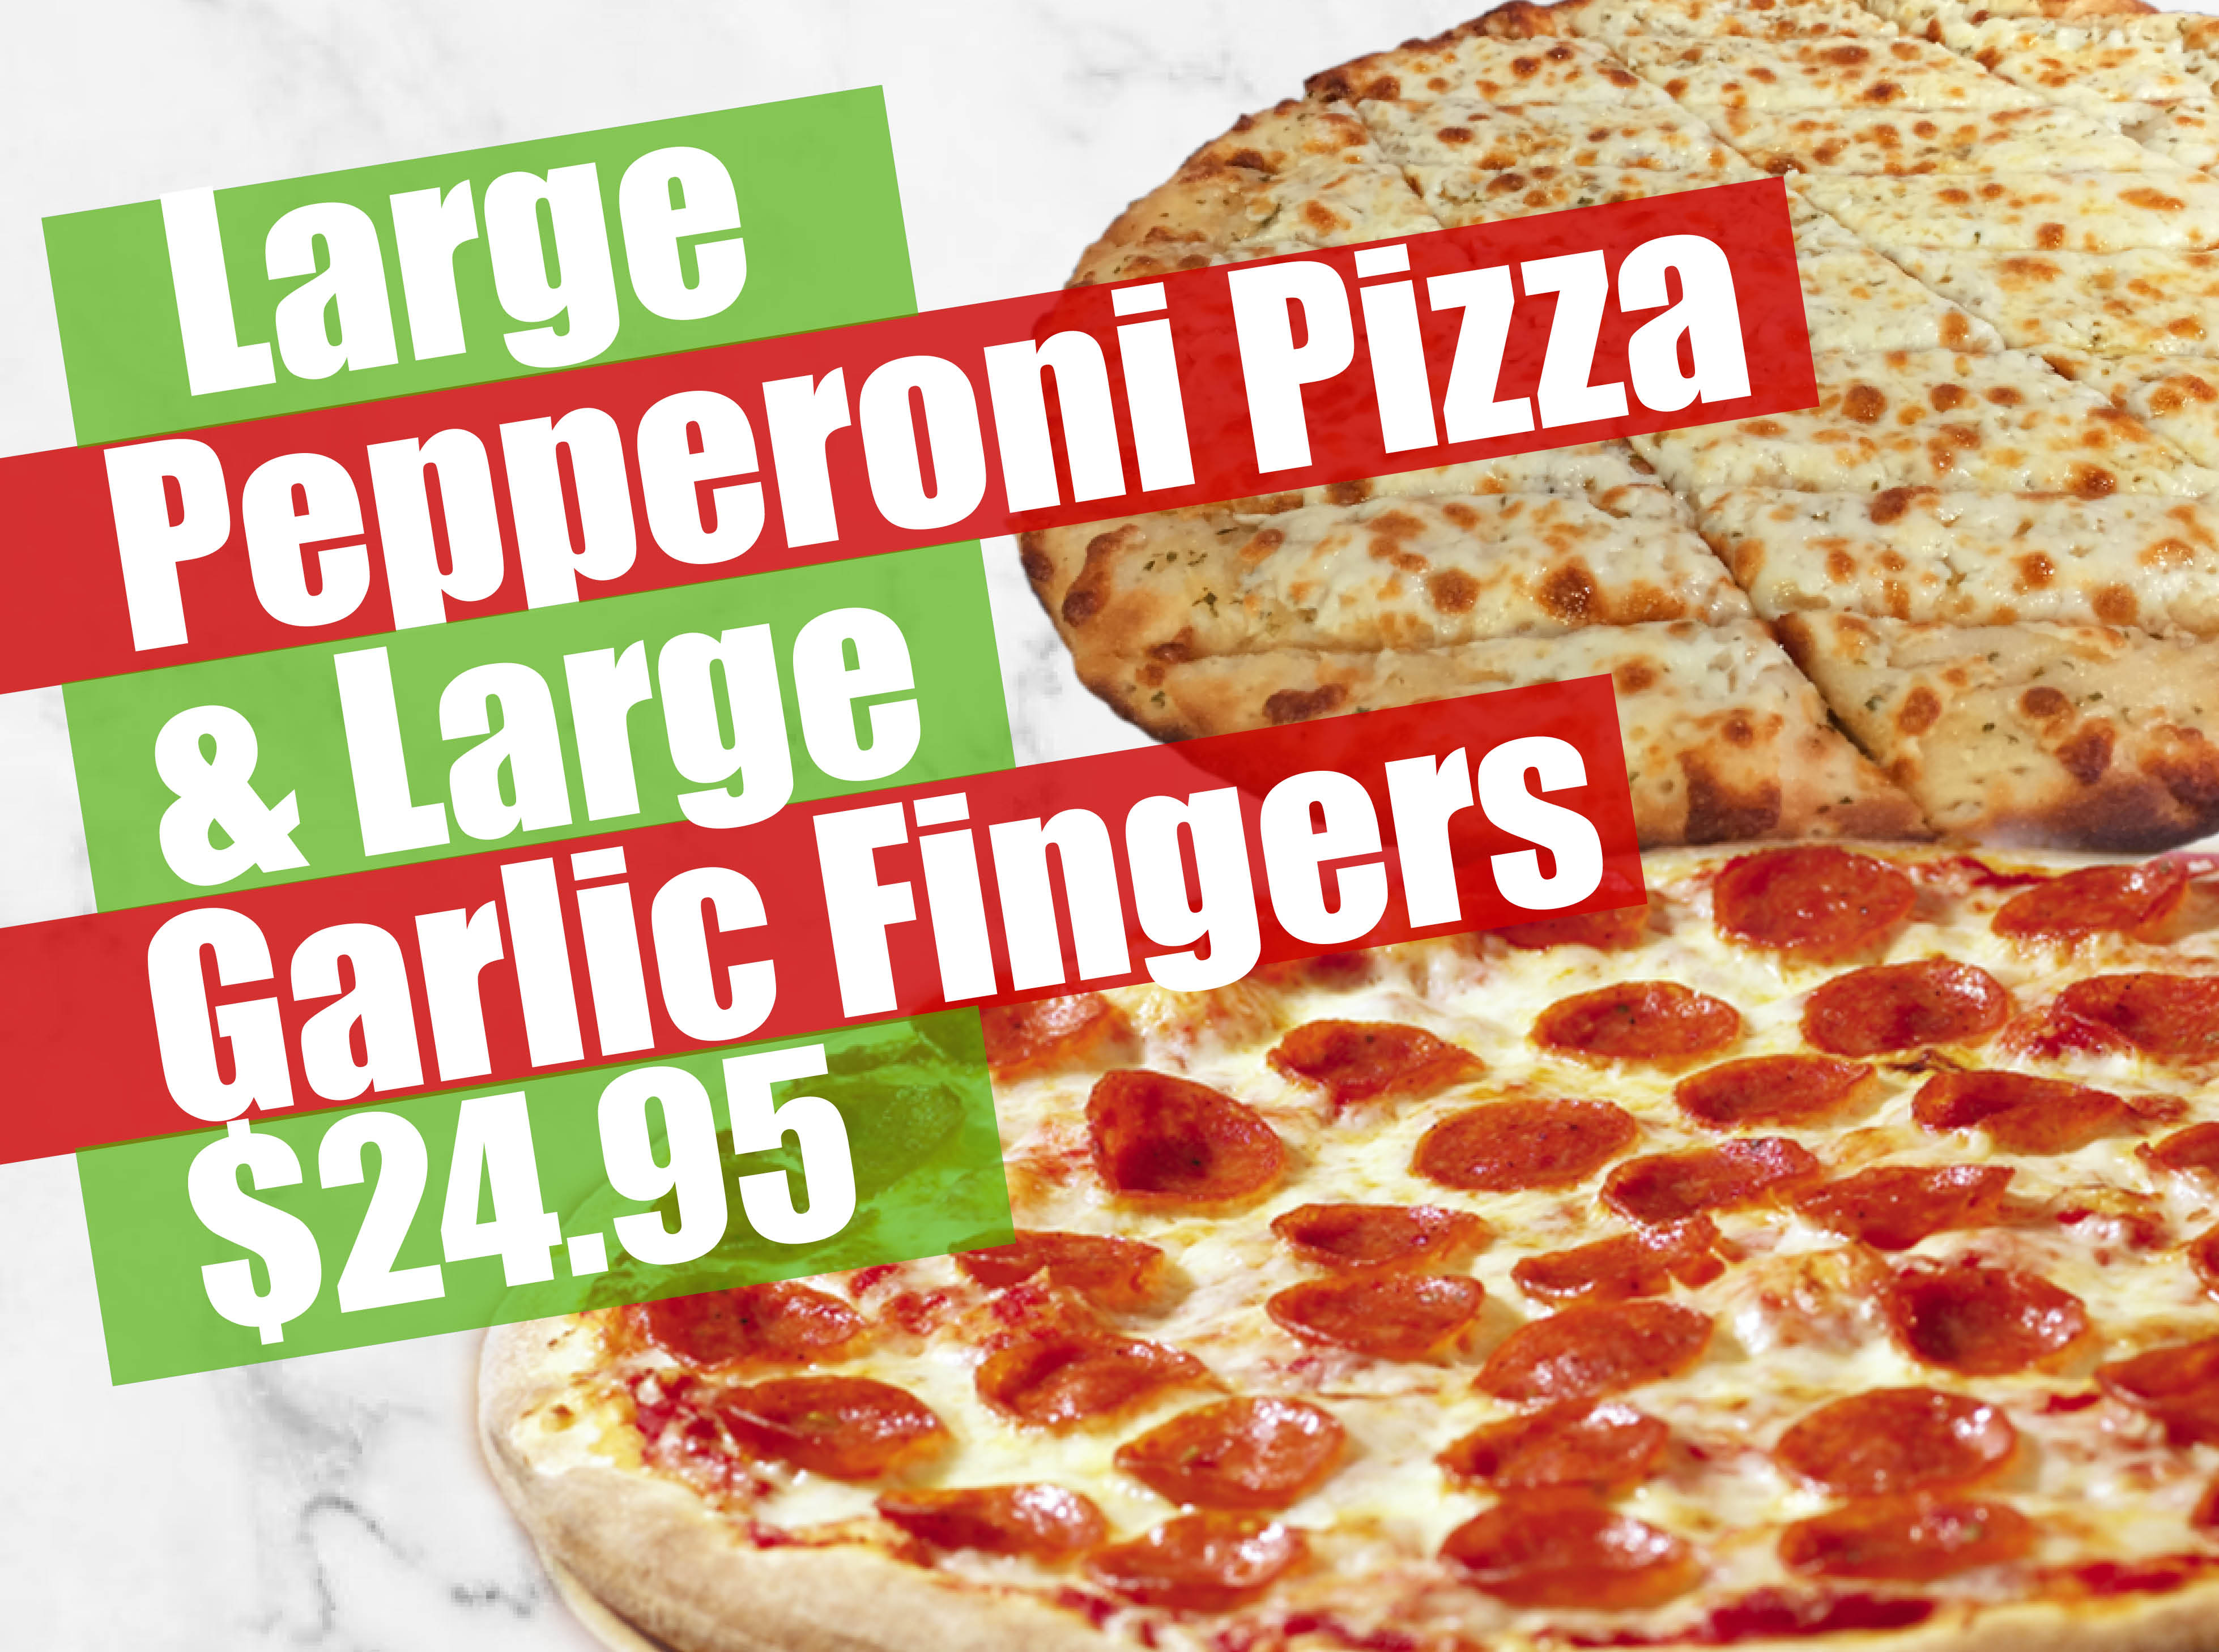 Large Pepperoni Pizza & Garlic Fingers $24.95